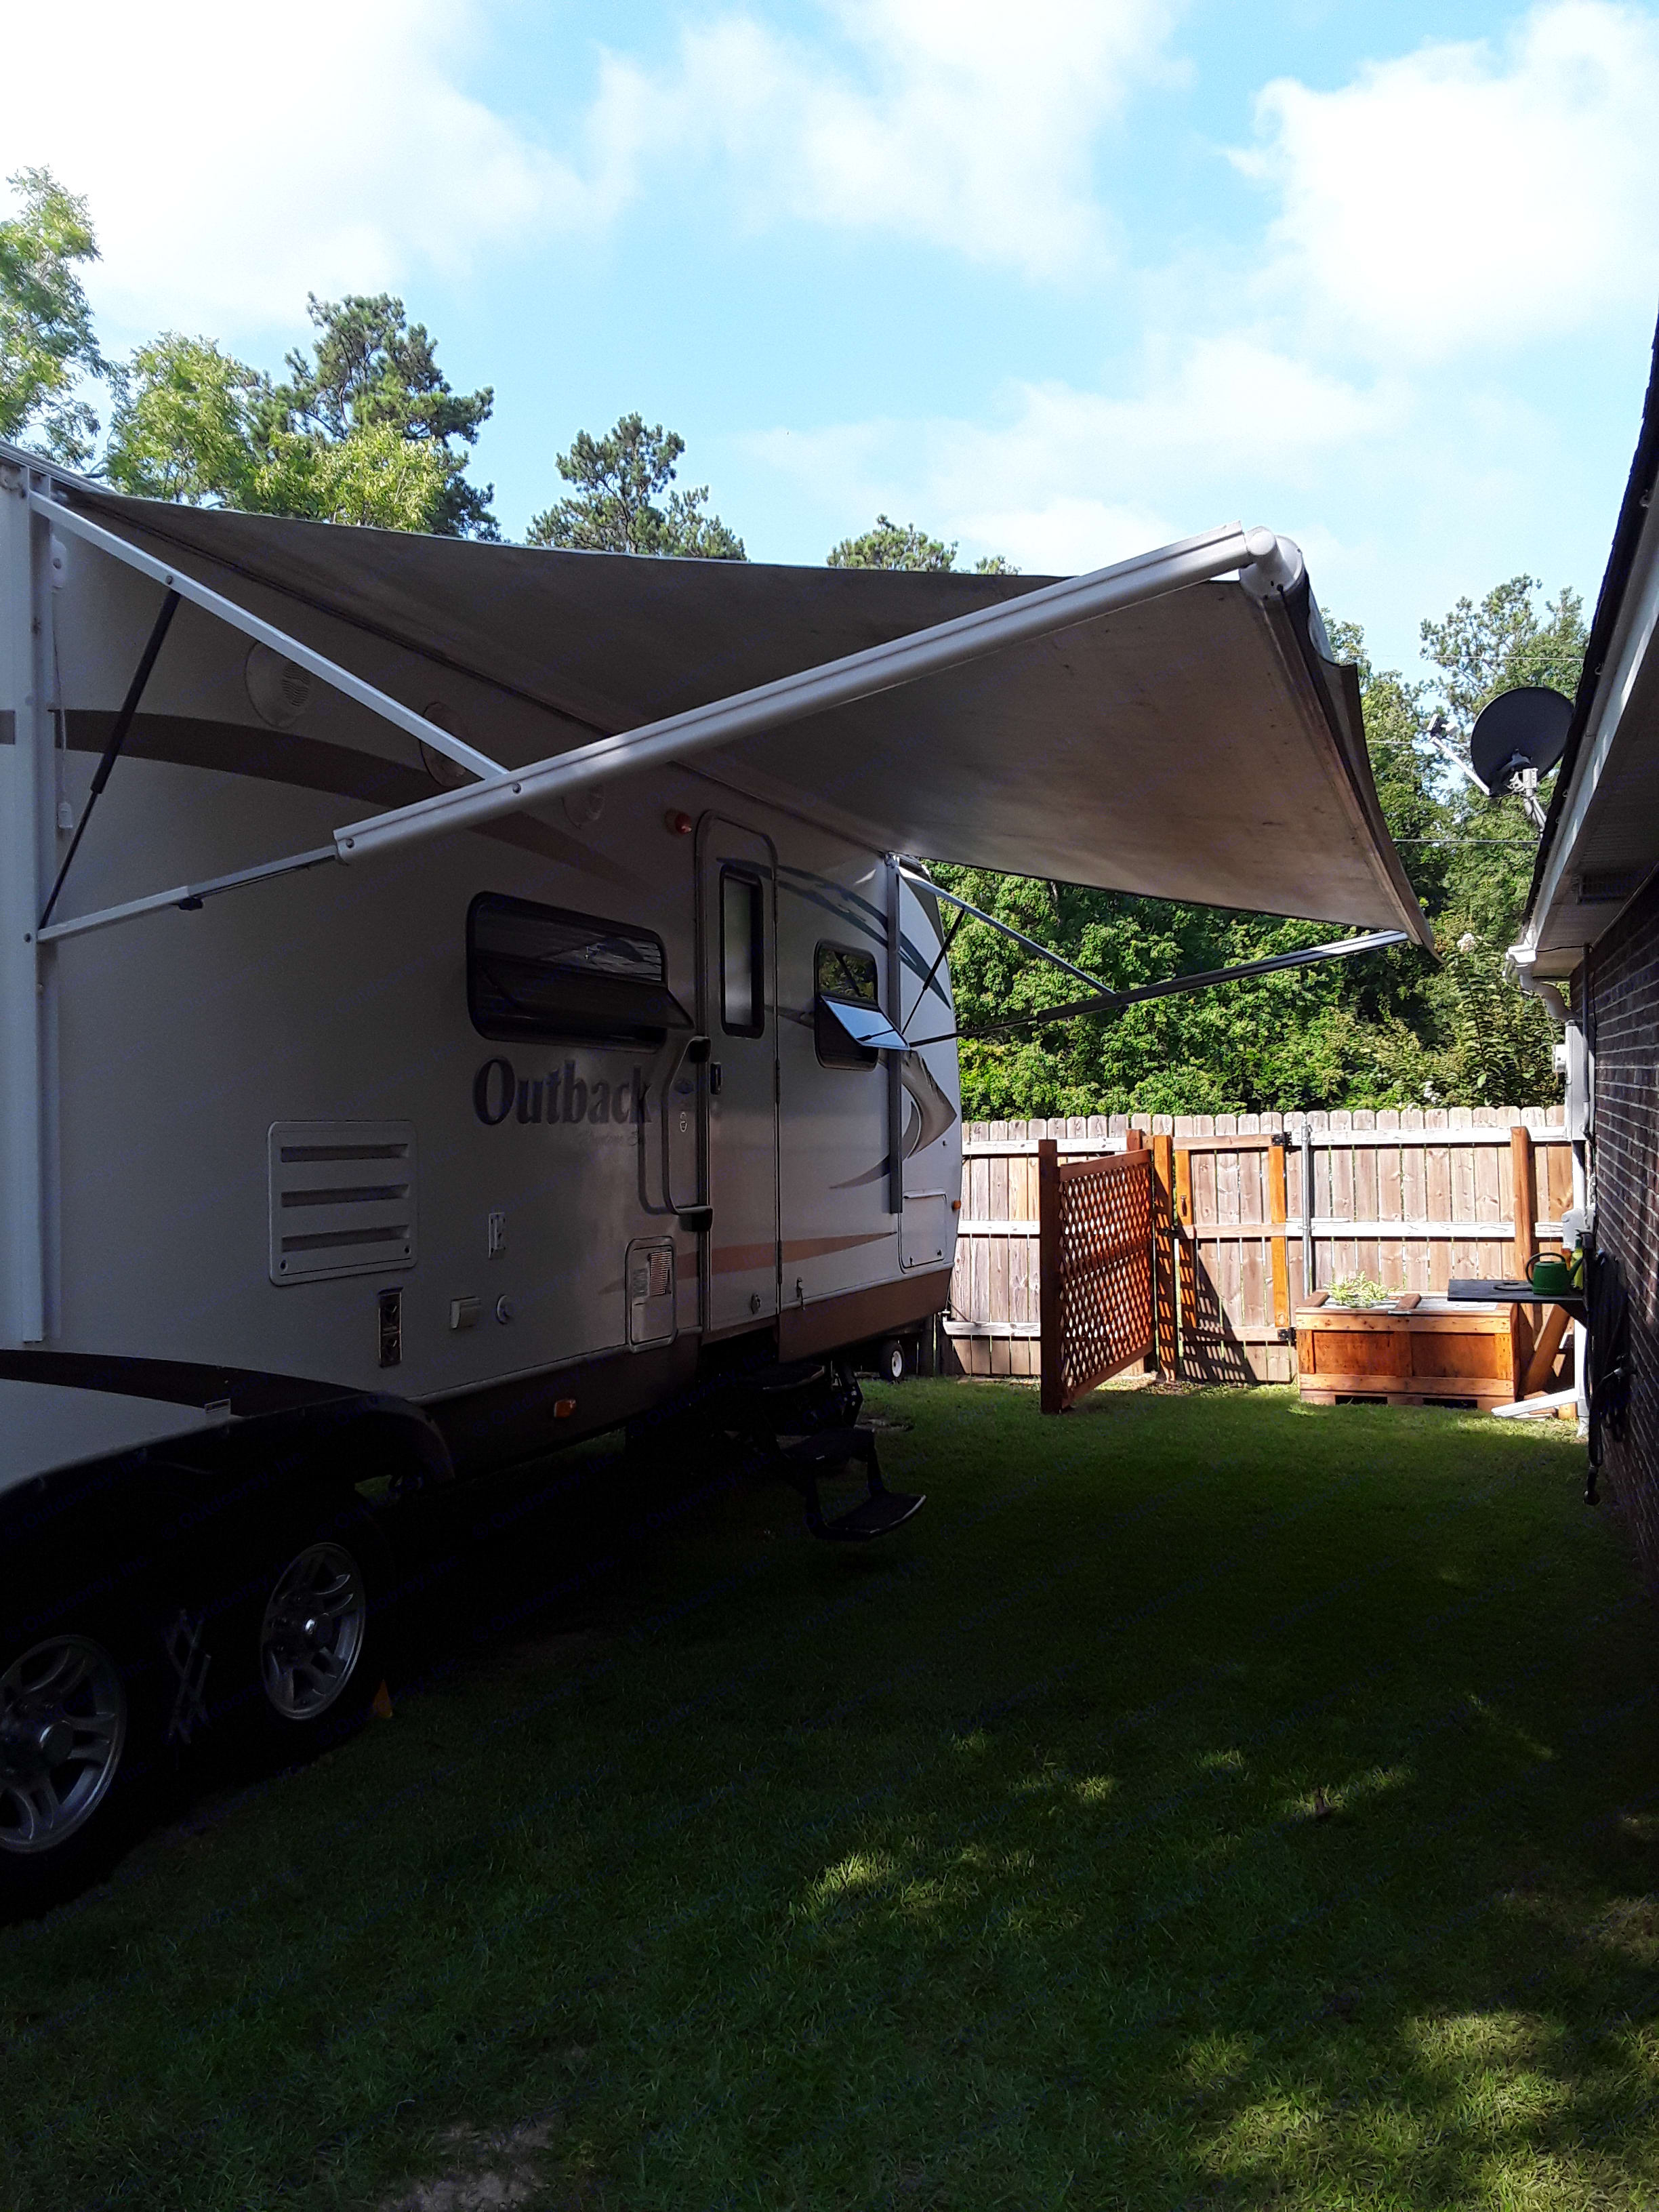 Electric awning with light line. Keystone Outback BH312 2011